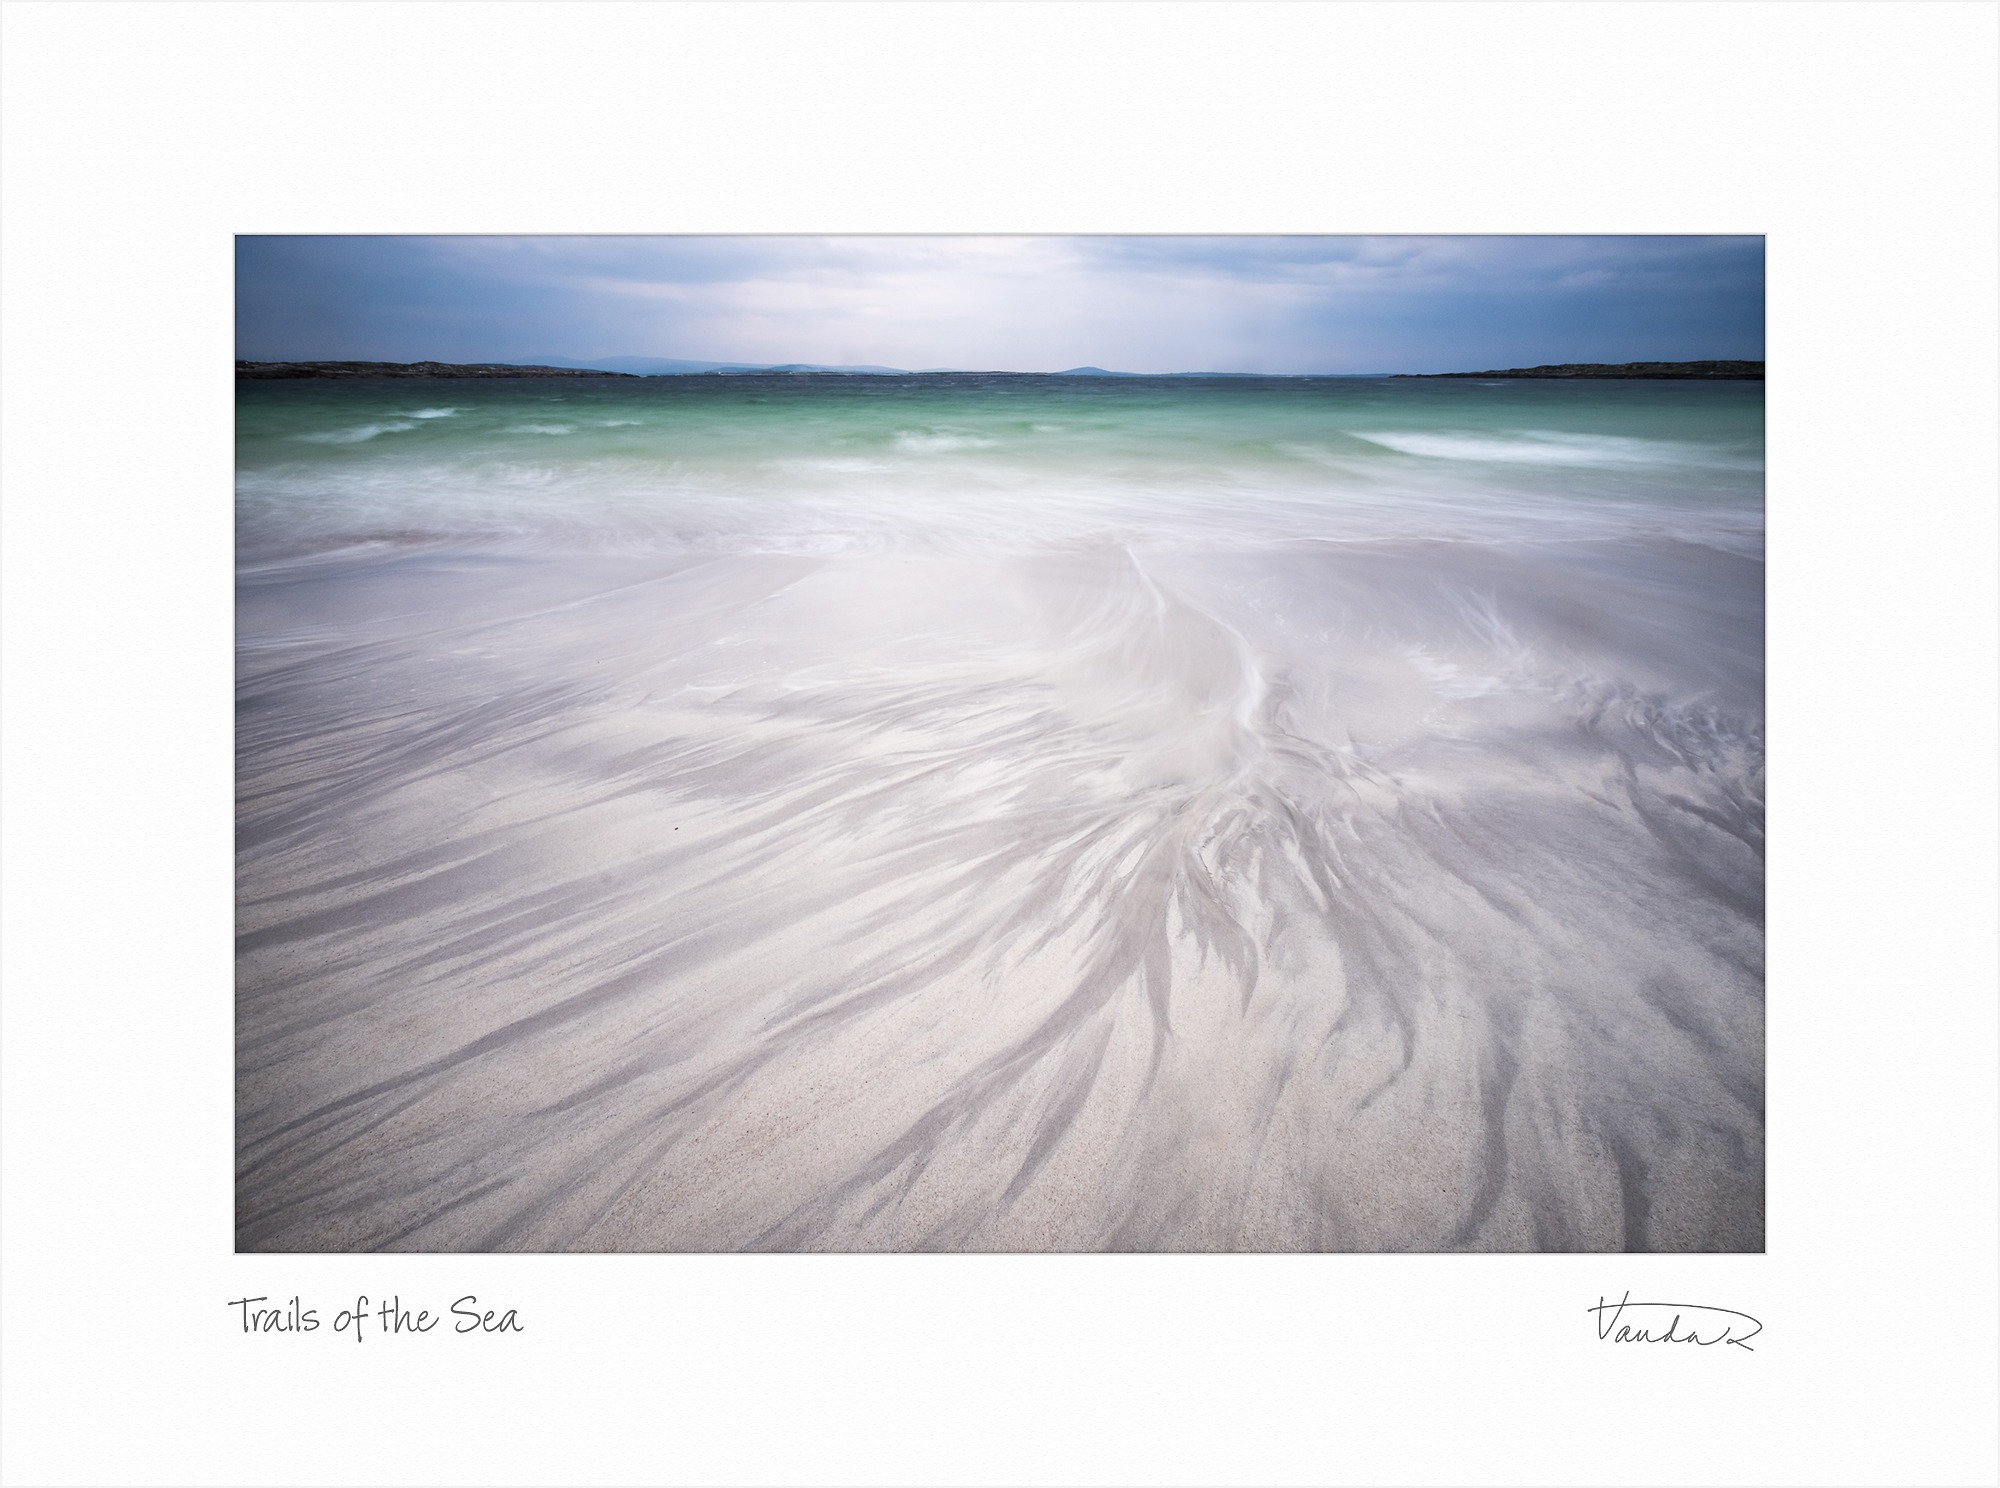 Trails of the Sea